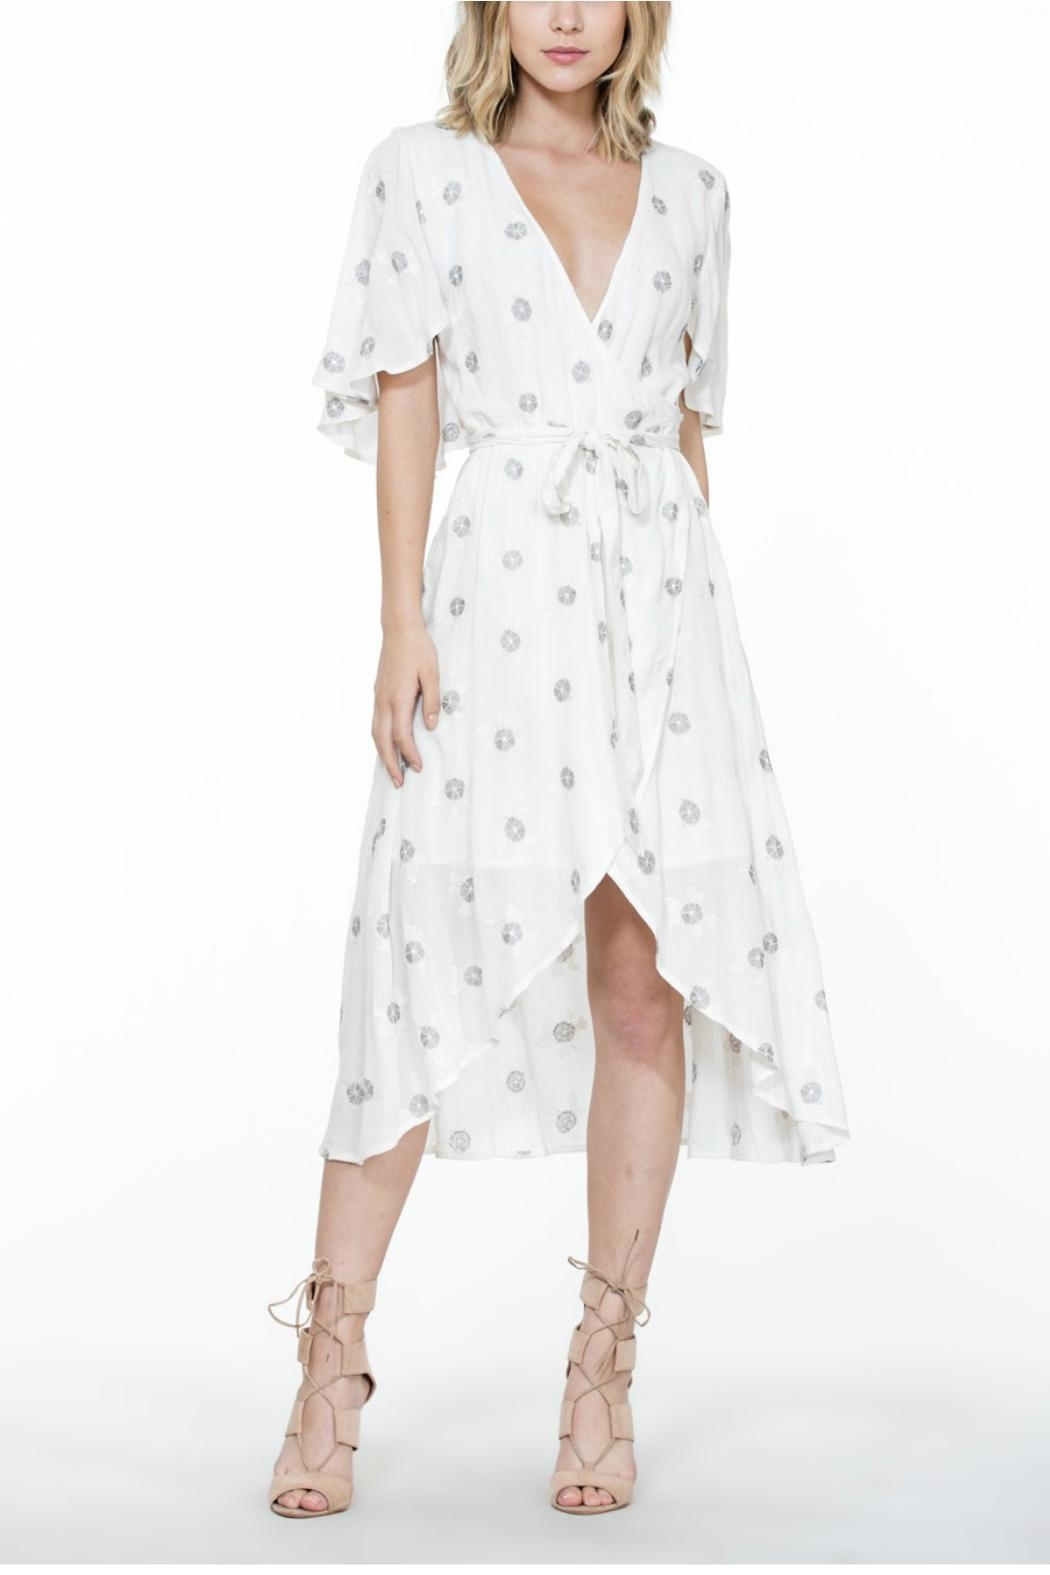 The Room Embroidery Wrap Dress - Main Image